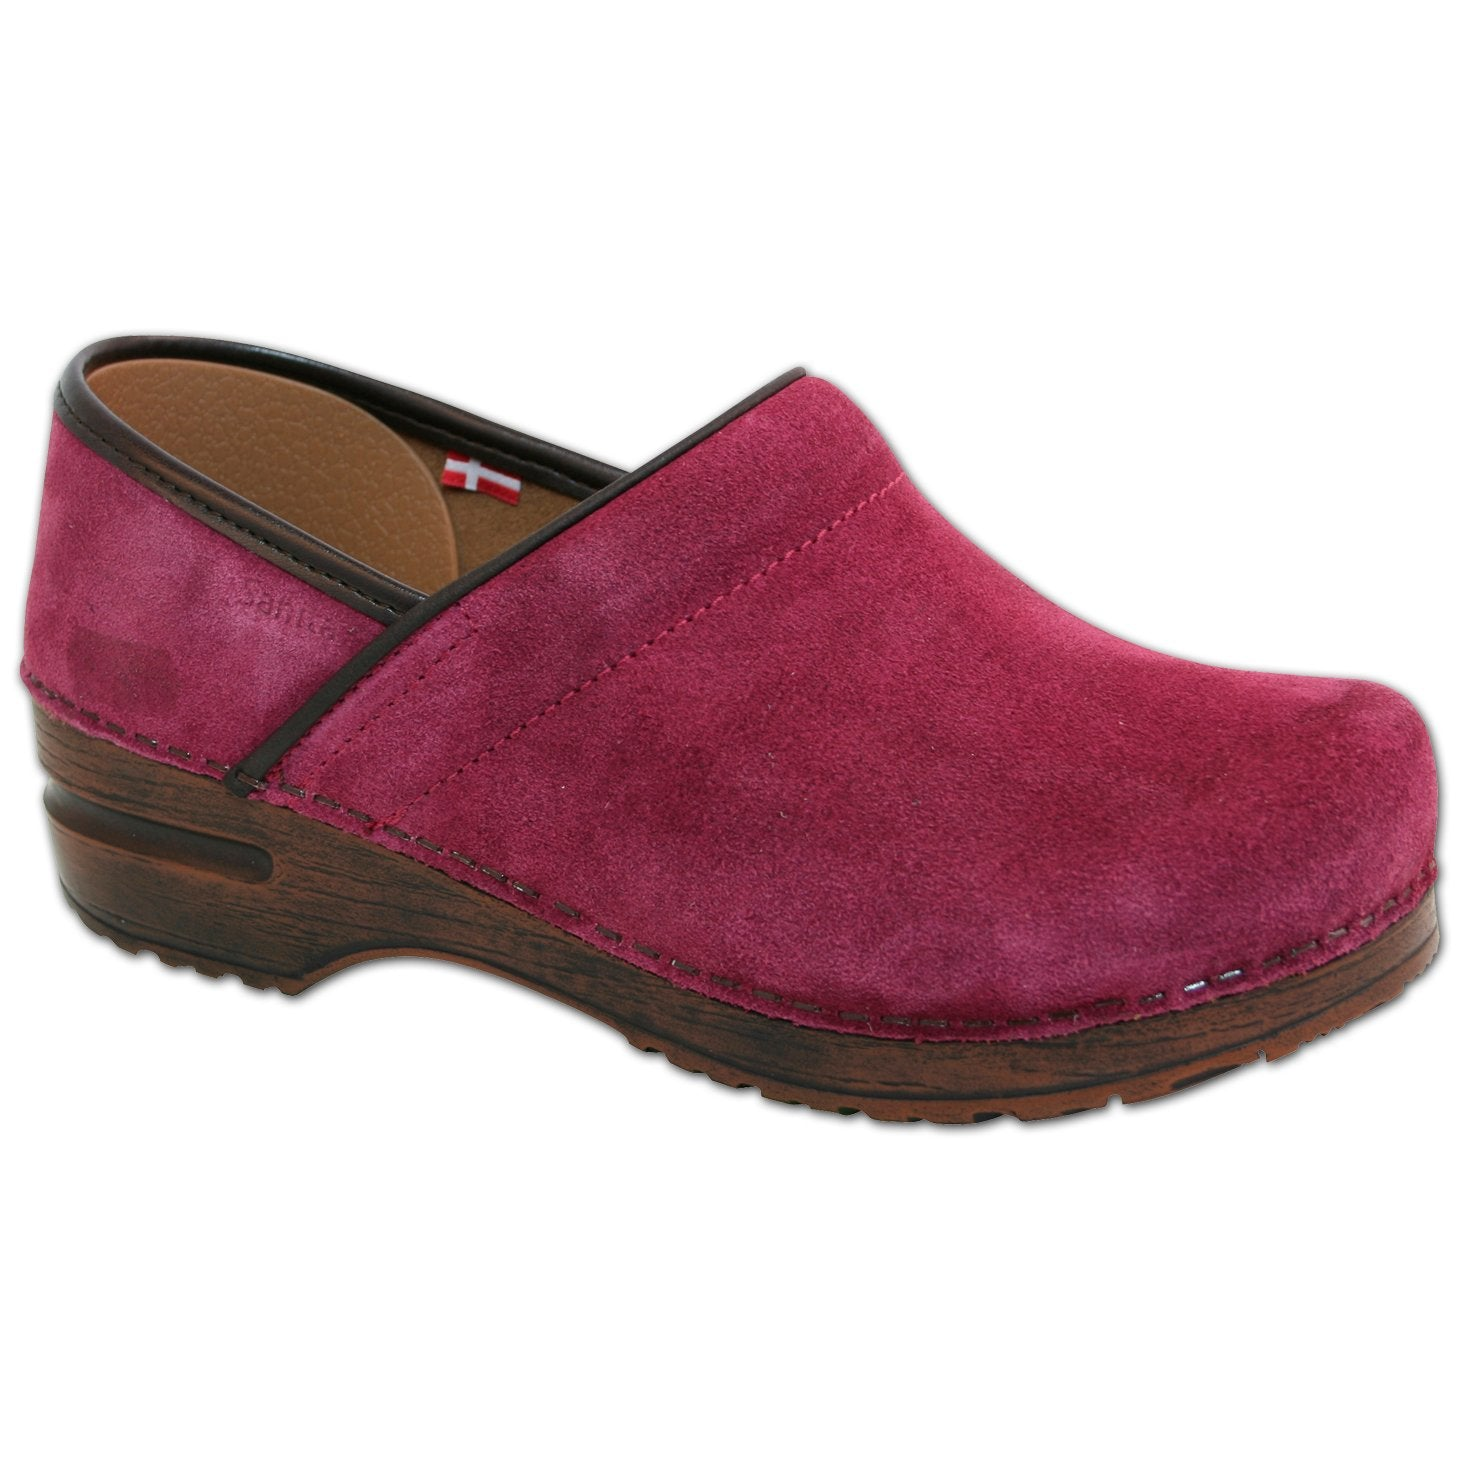 Nina Women's - Raspberry - Second